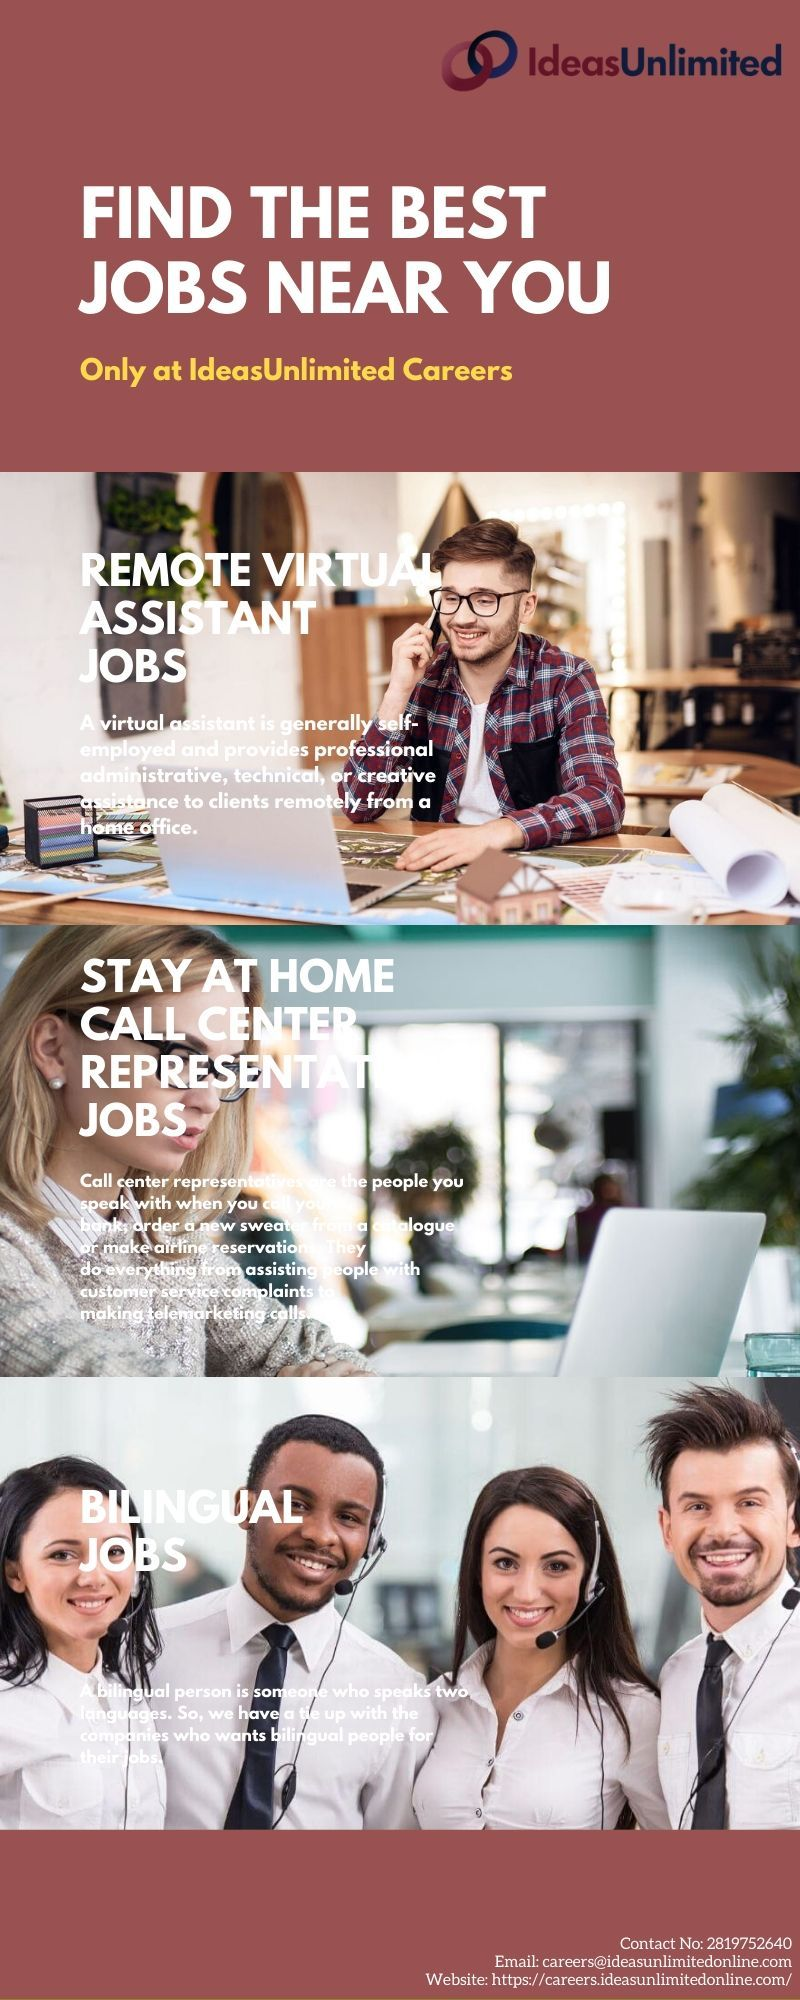 Remote Virtual Assistant Jobs in 2020 Virtual assistant